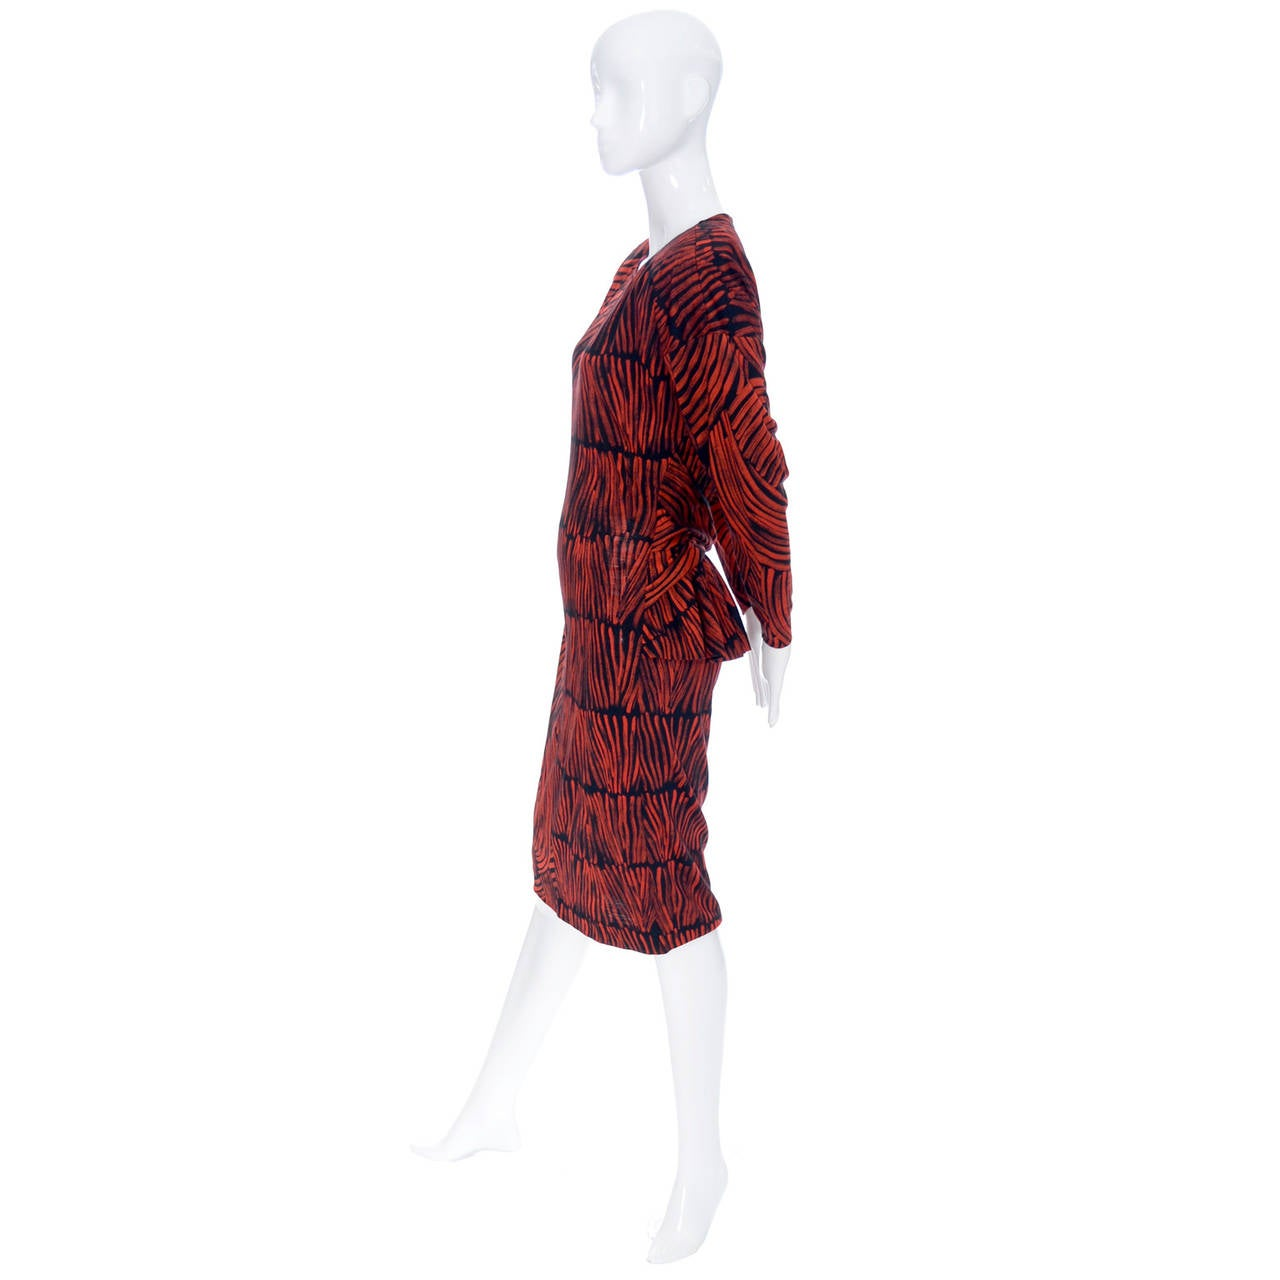 I love the fabulous abstract red and black print on this lightweight wool vintage Missoni dress! The dress was made for I Magnin in the 1980's and it has a great ruffled peplum in the back with an attached cross over sash. There are shoulder pads,